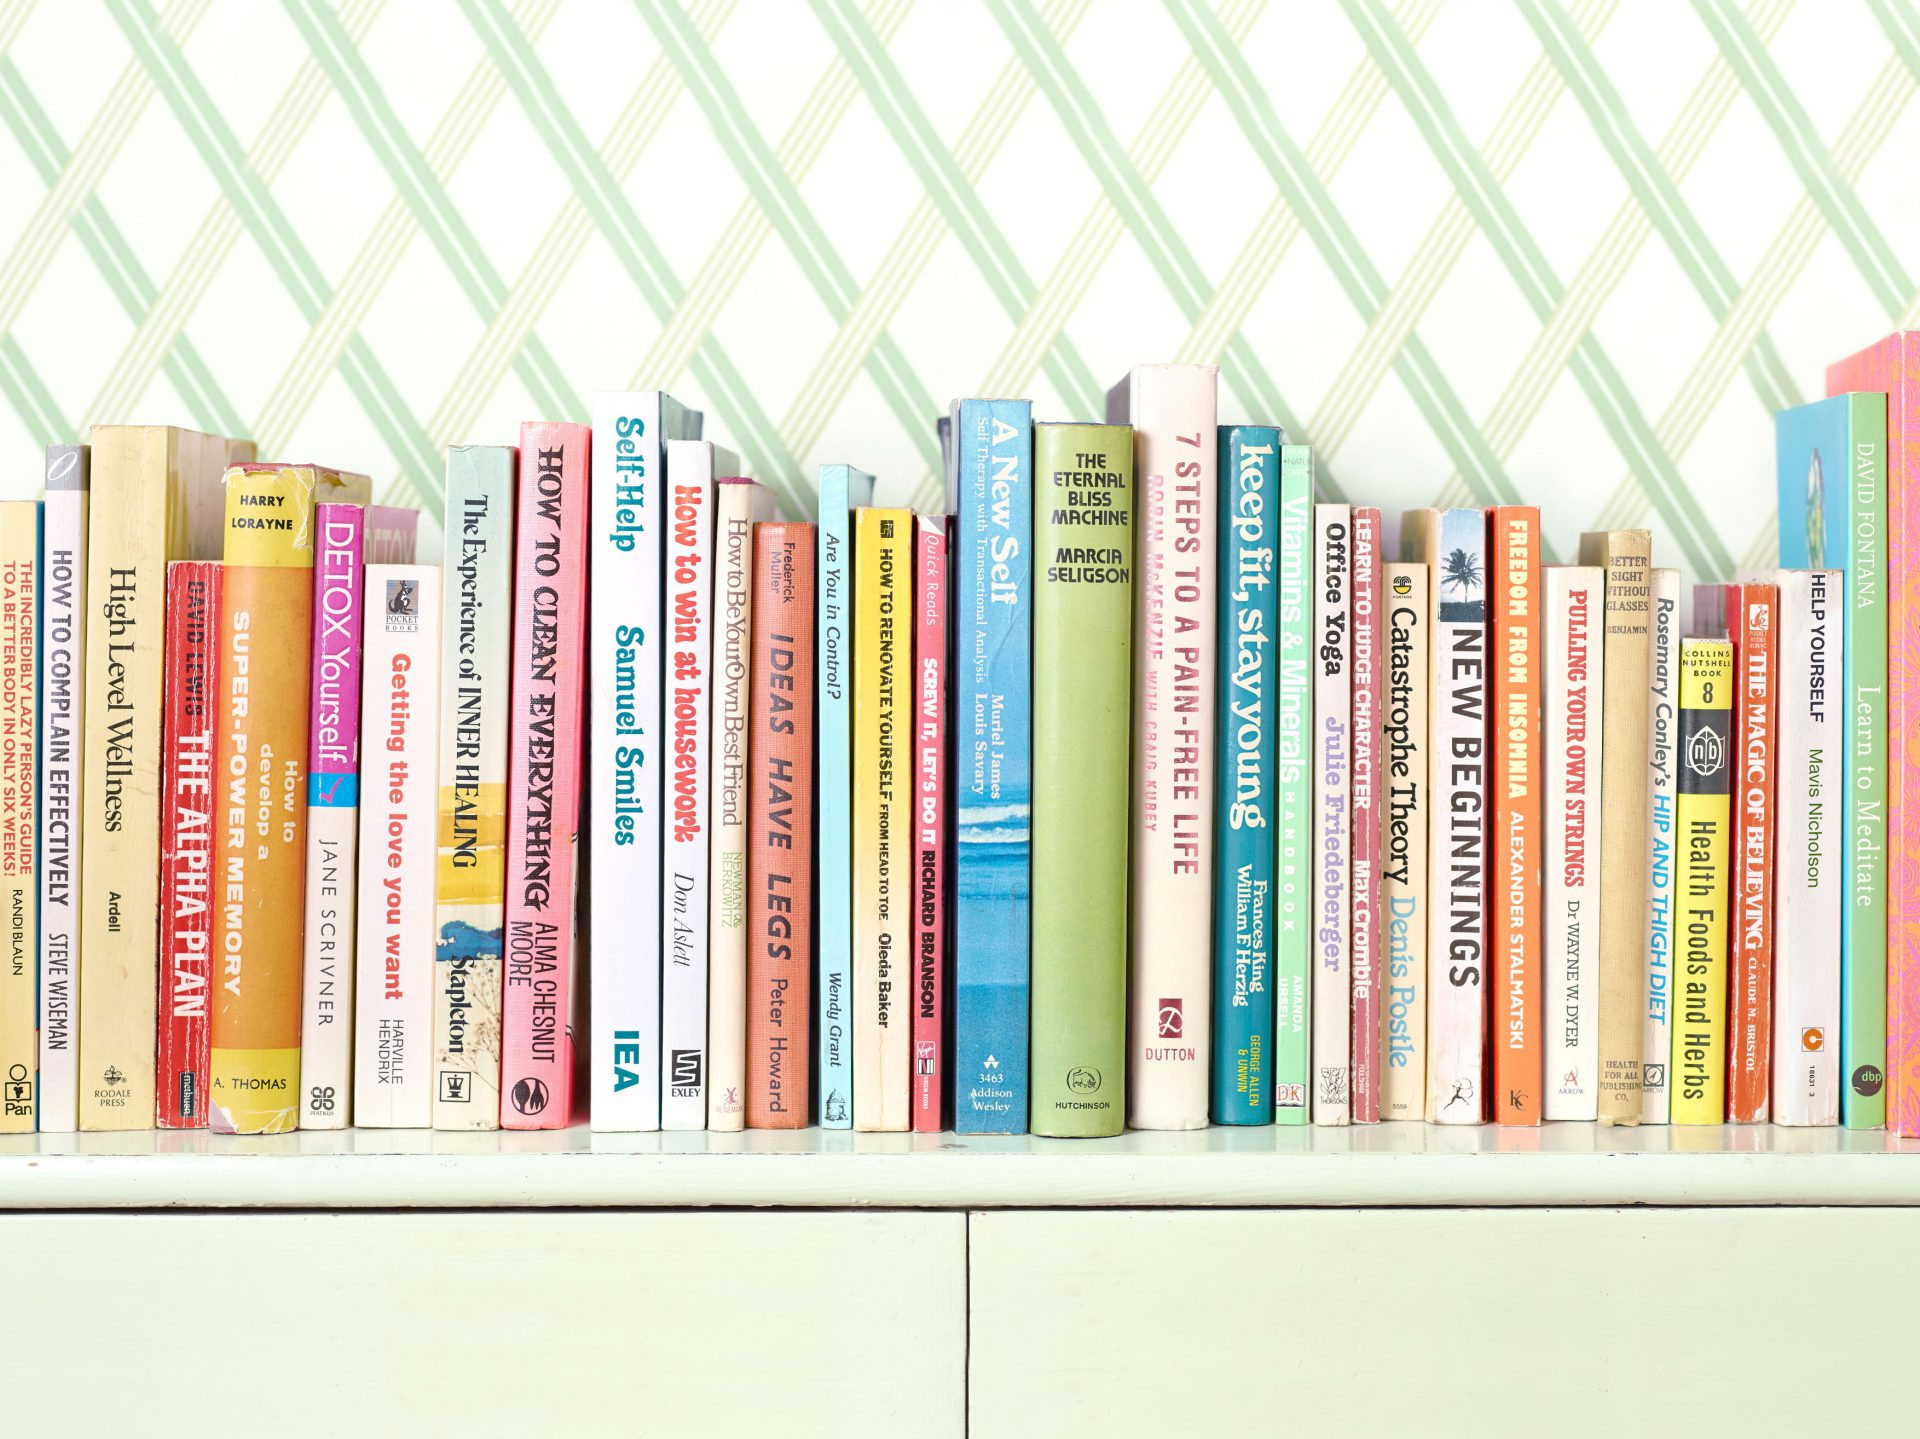 Shaw & Shaw – Self Help books on a shelf – Shaw and Shaw Advertising photographers photographer photography